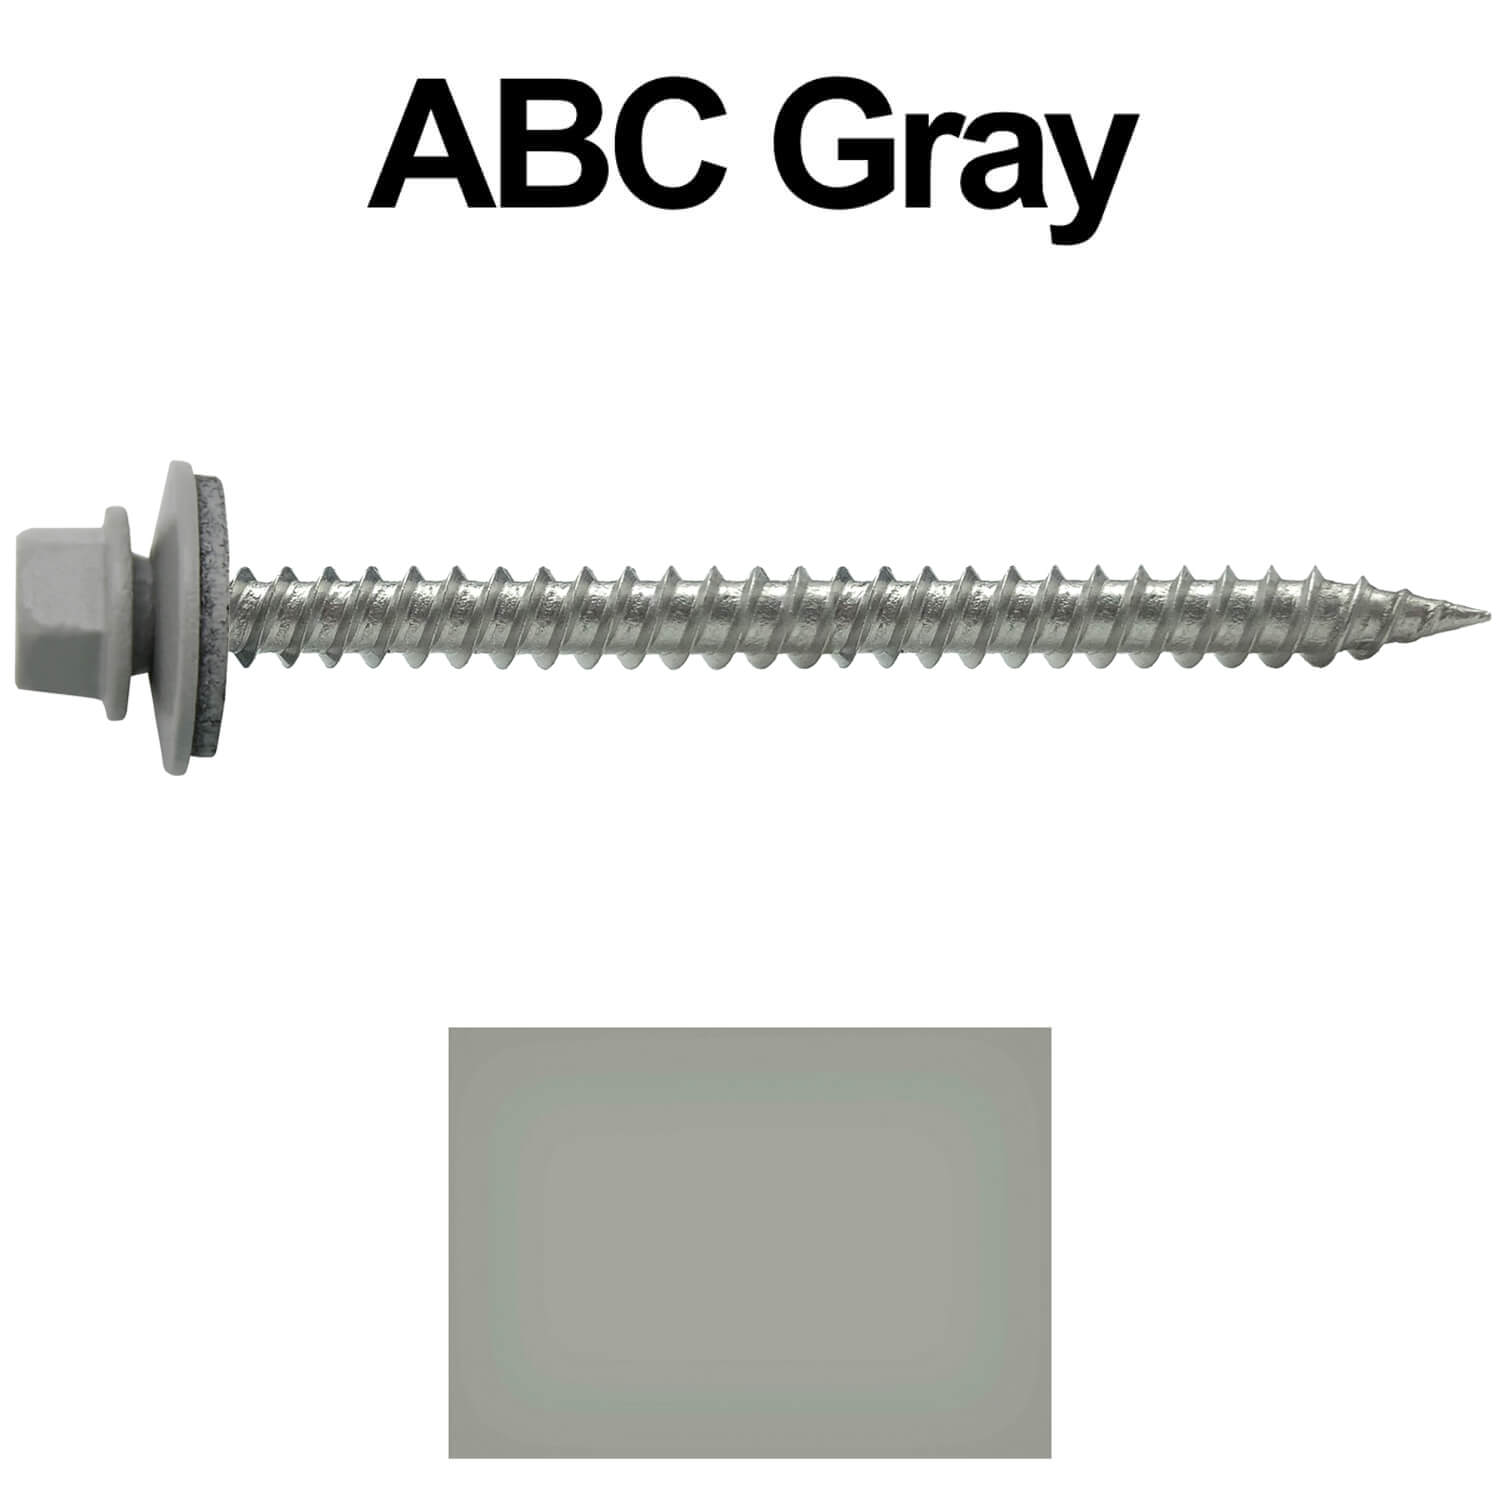 Stainless Steel Metal Roofing Screws (250) 9 x 2-1/2